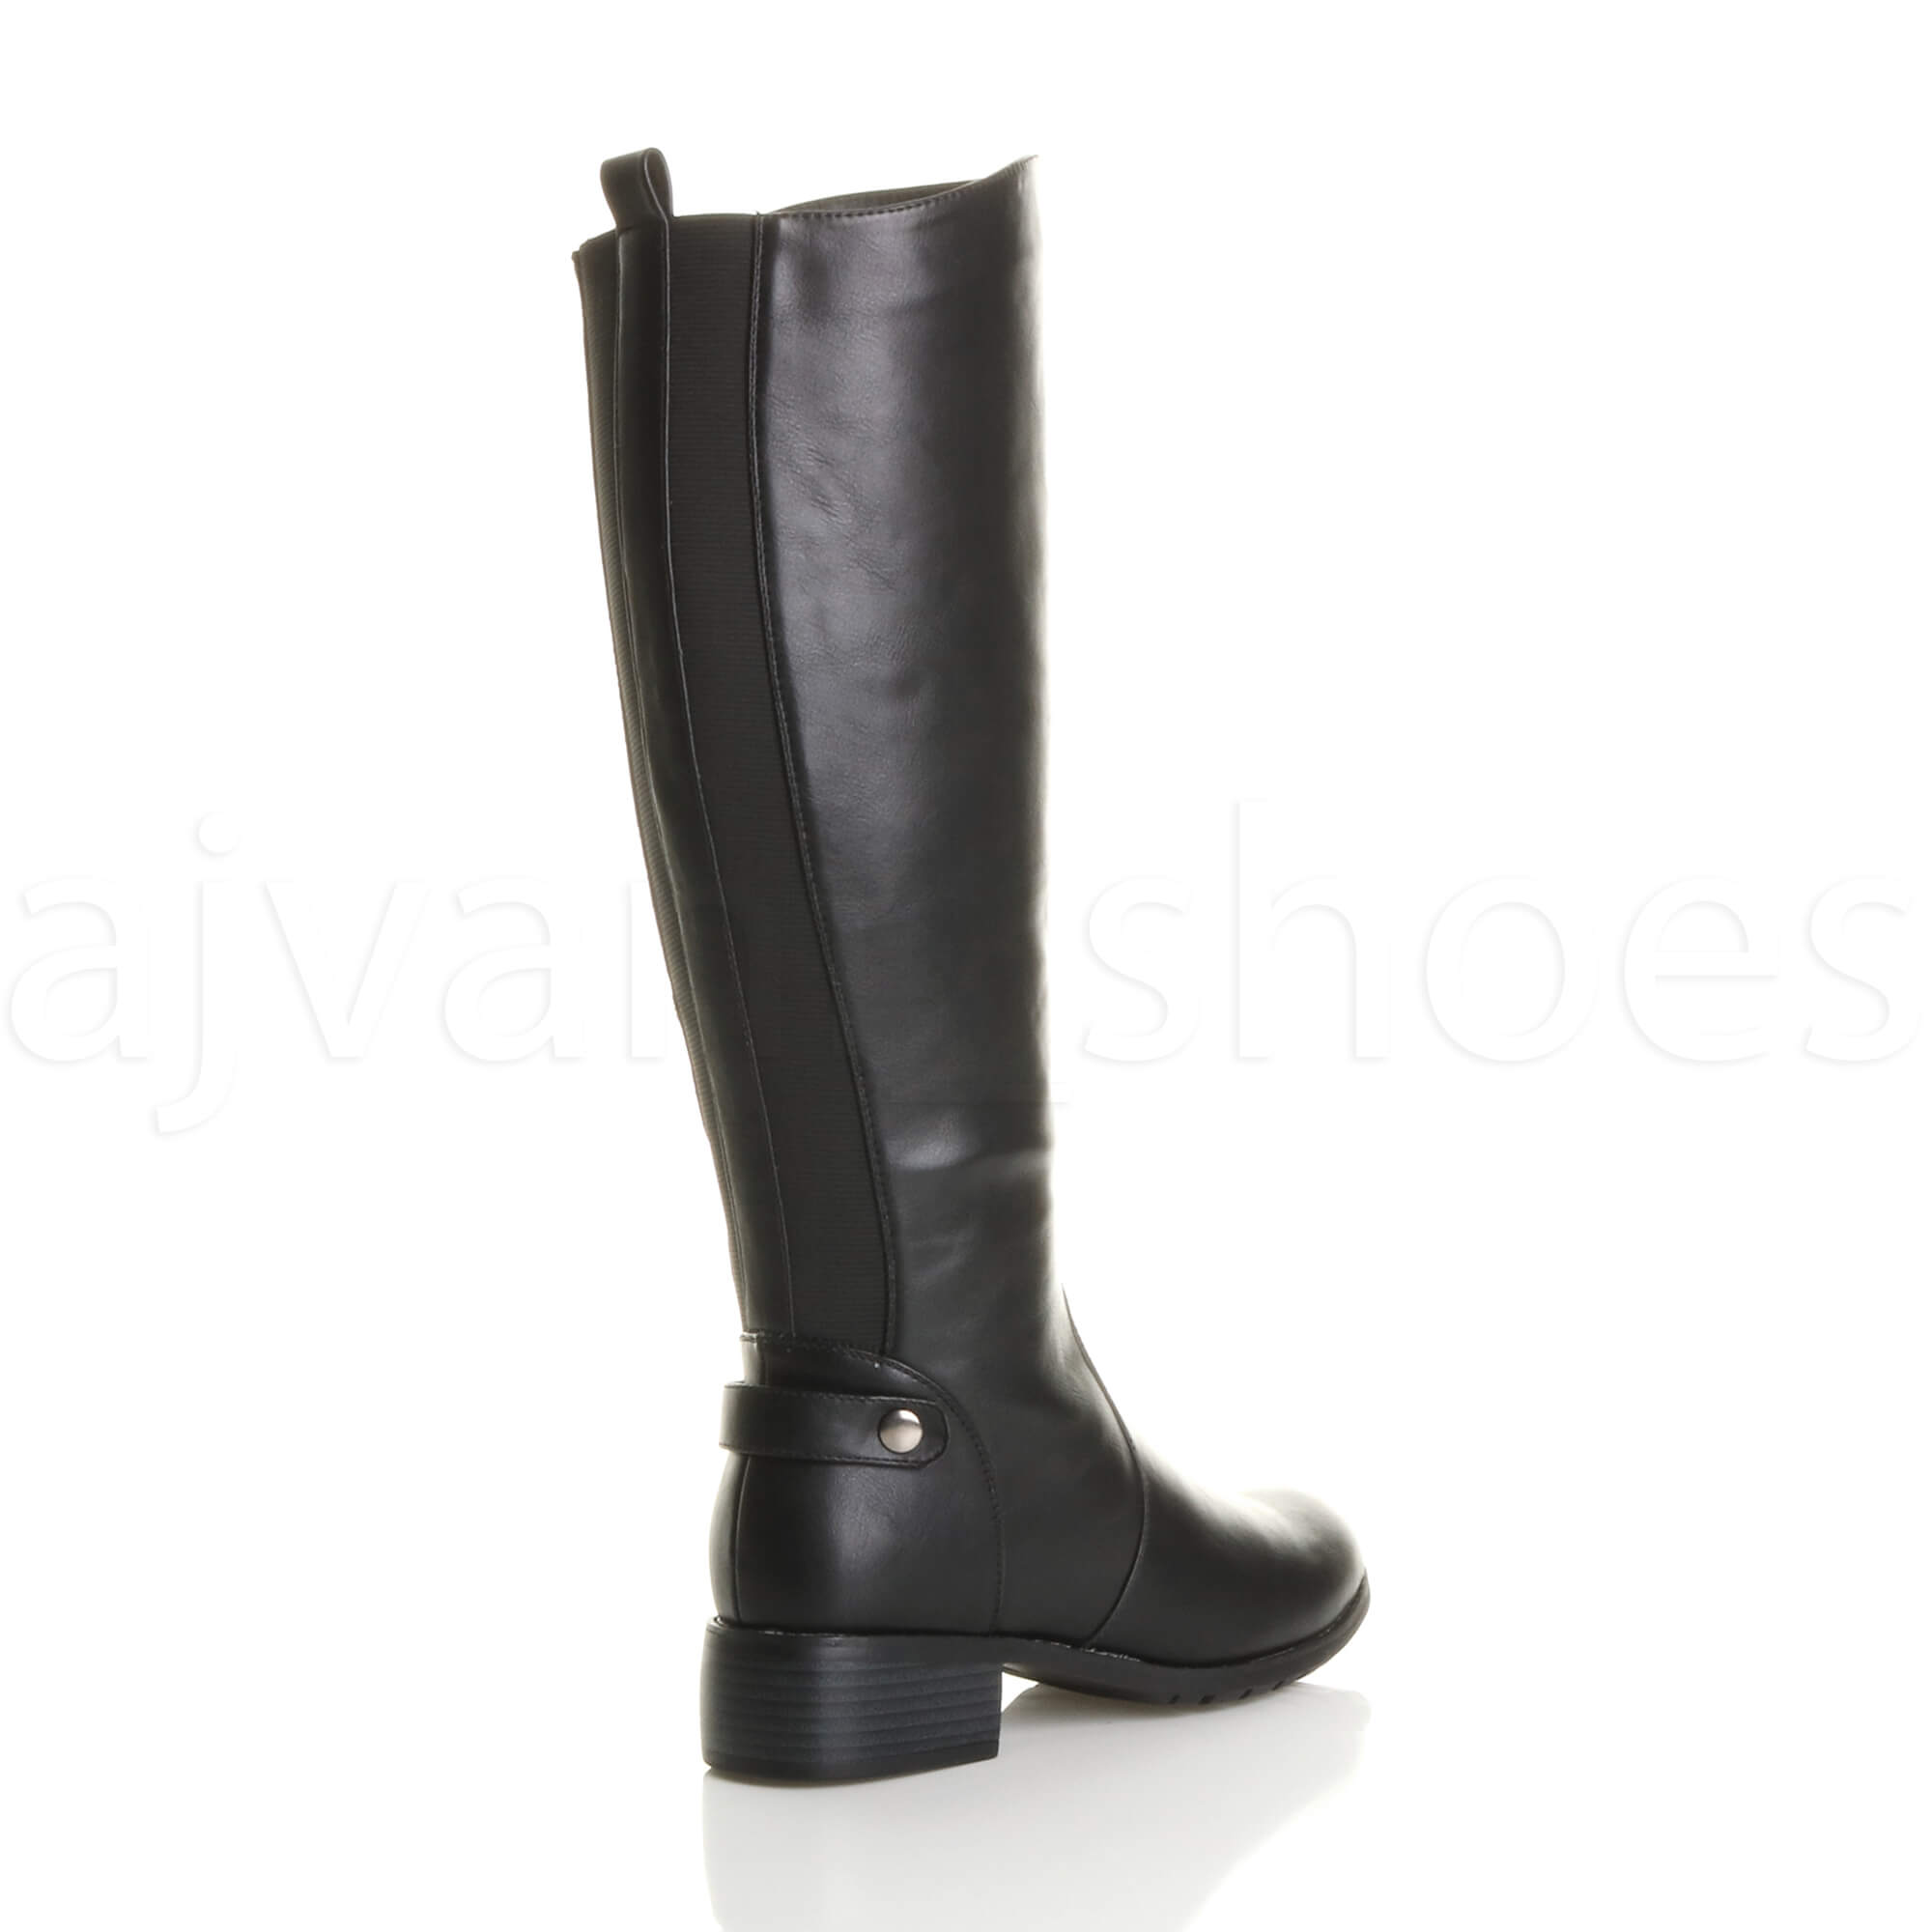 WOMENS-LADIES-LOW-MID-HEEL-GUSSET-STRETCH-CHELSEA-ZIP-CALF-RIDING-BOOTS-SIZE